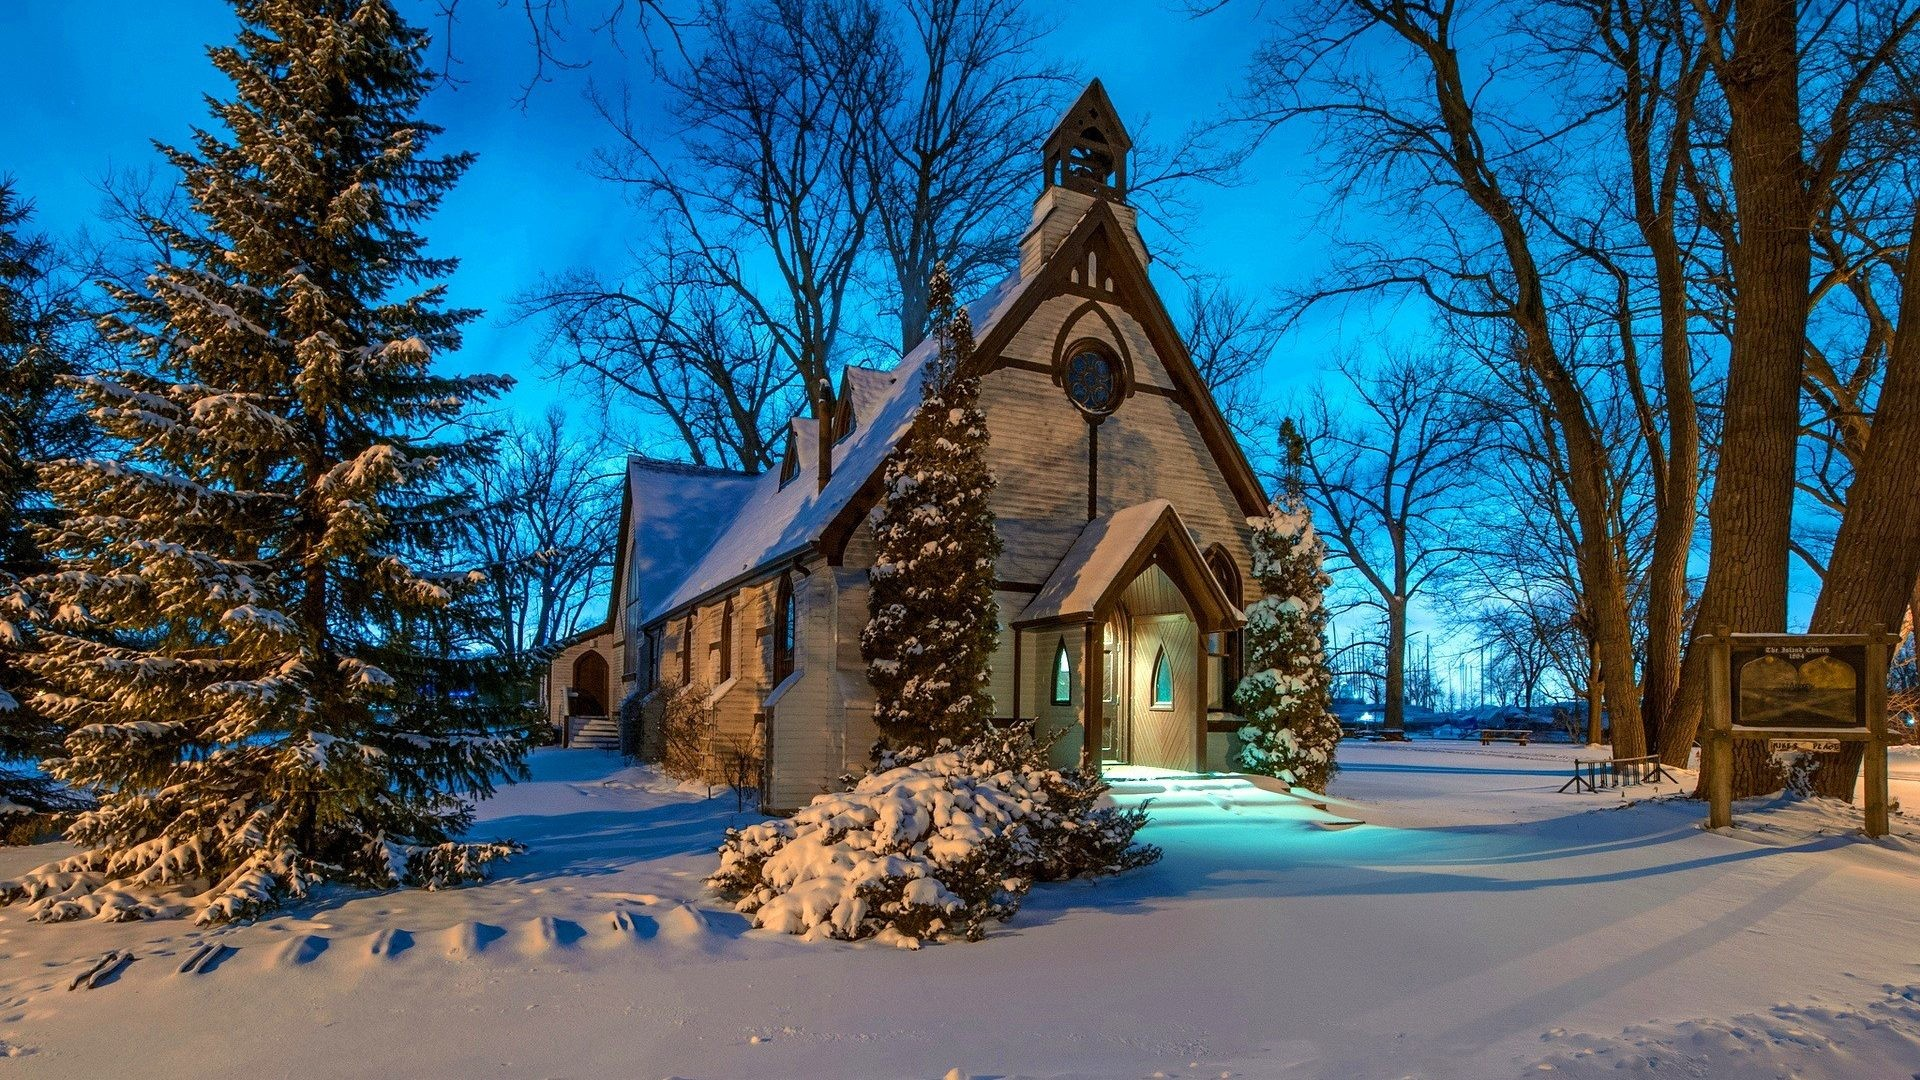 Building Tag – Coldness Season Trees Nature Winter Woods Forest Frost  Building Ice Church Snow Animated